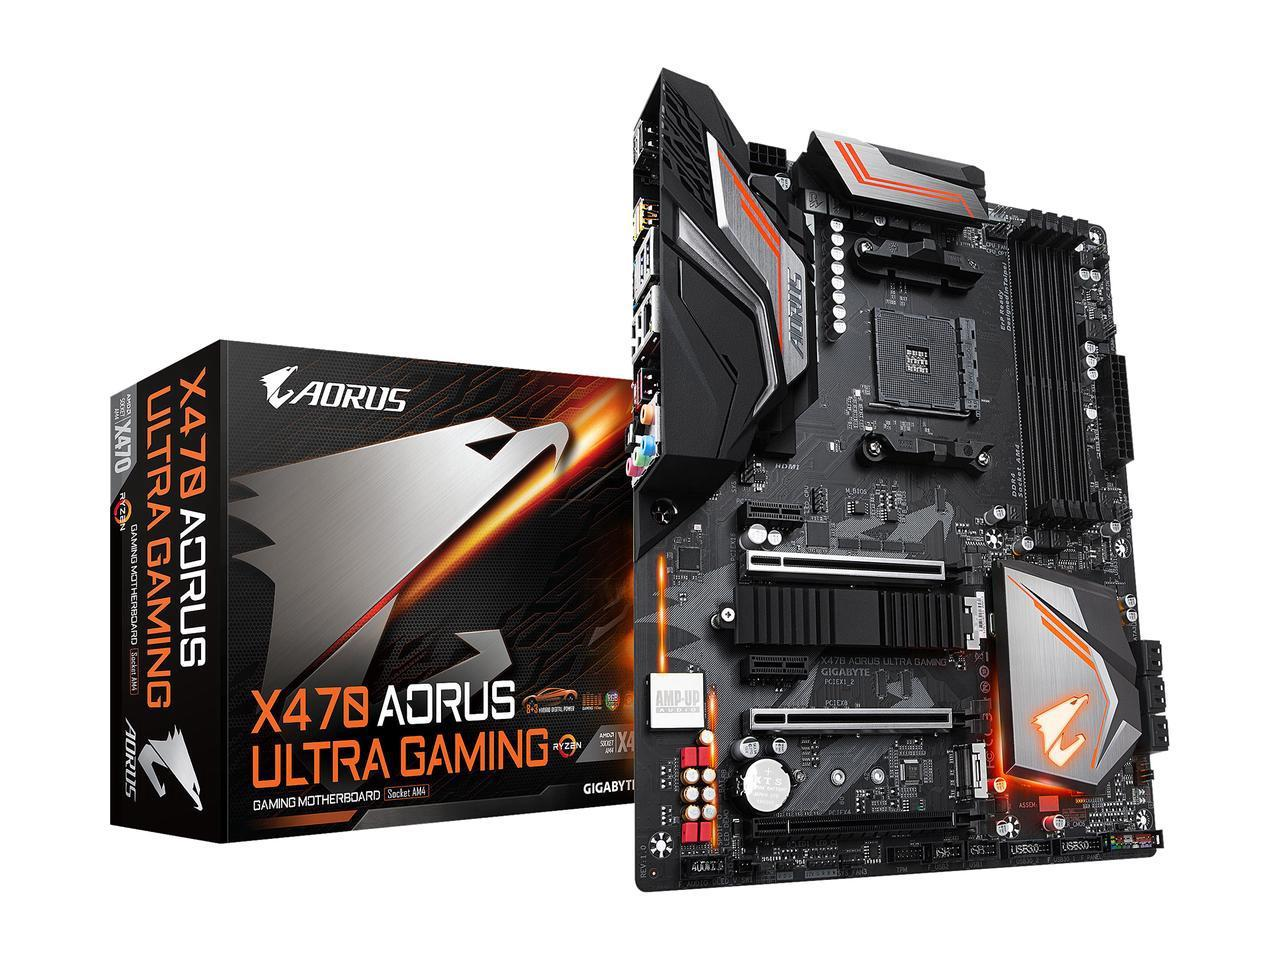 Gigabyte X470 AORUS Ultra Gaming AM4 AMD X470 SATA 6Gb/s USB 3 1 HDMI ATX  AMD Motherboard